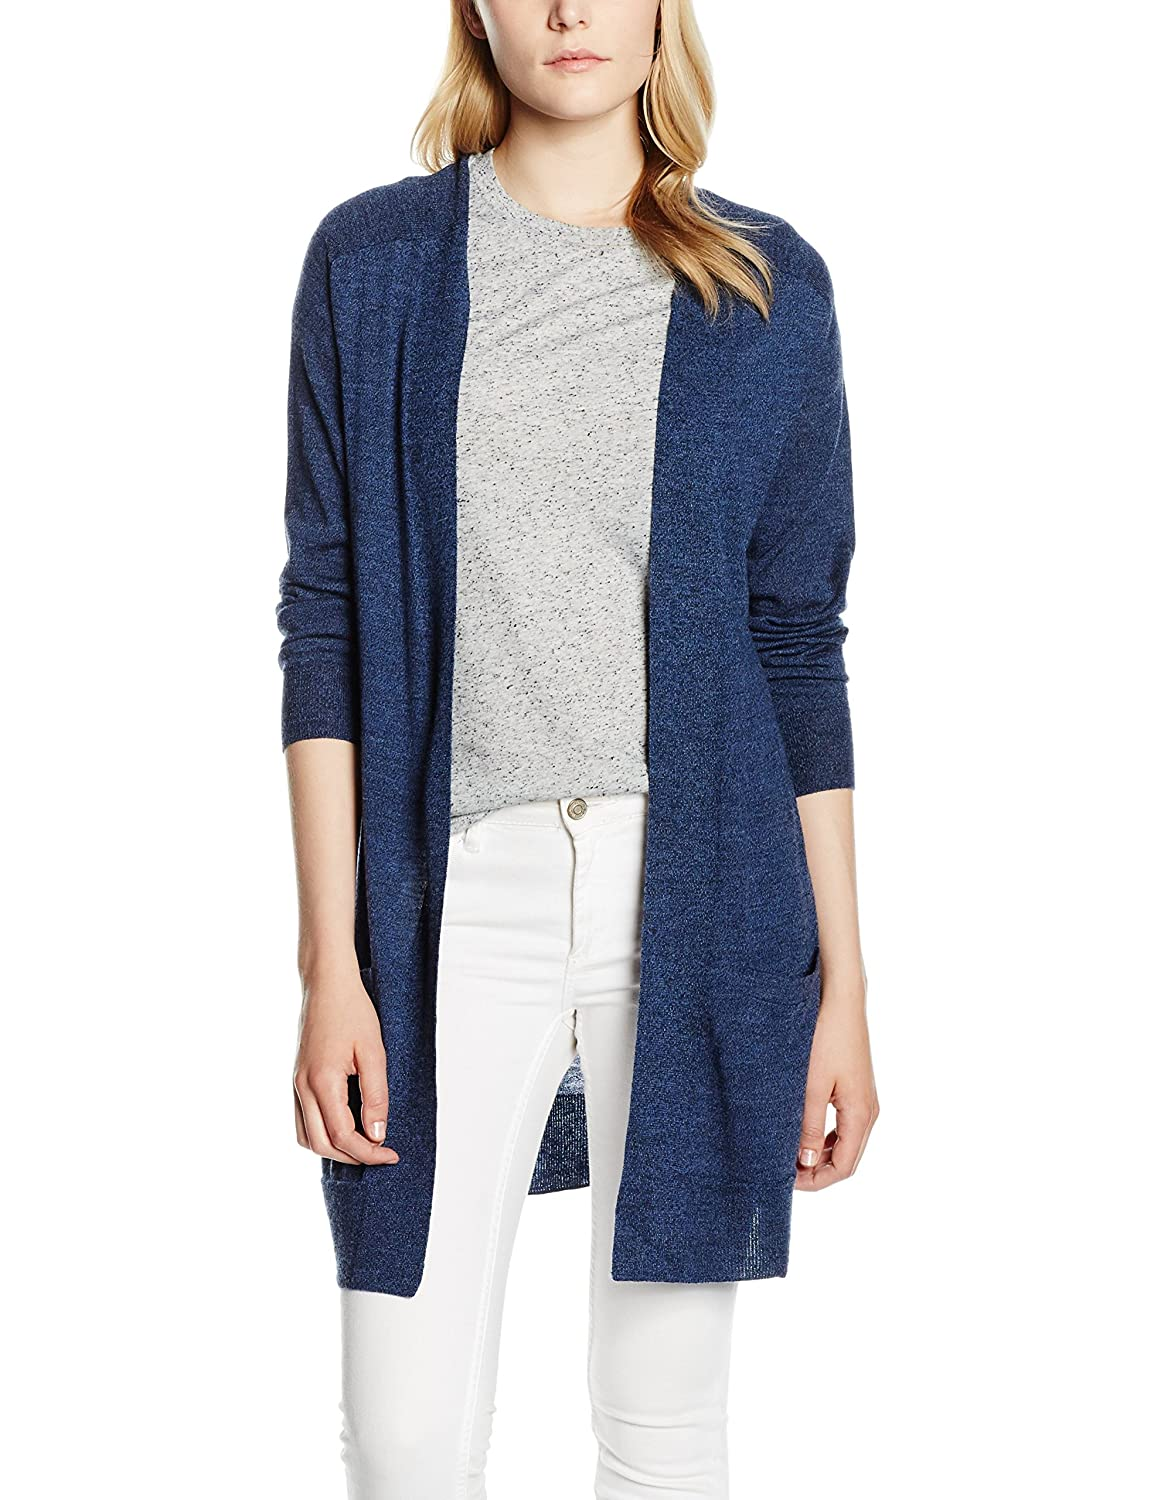 Noa Noa Damen Strickjacke Merino Knit